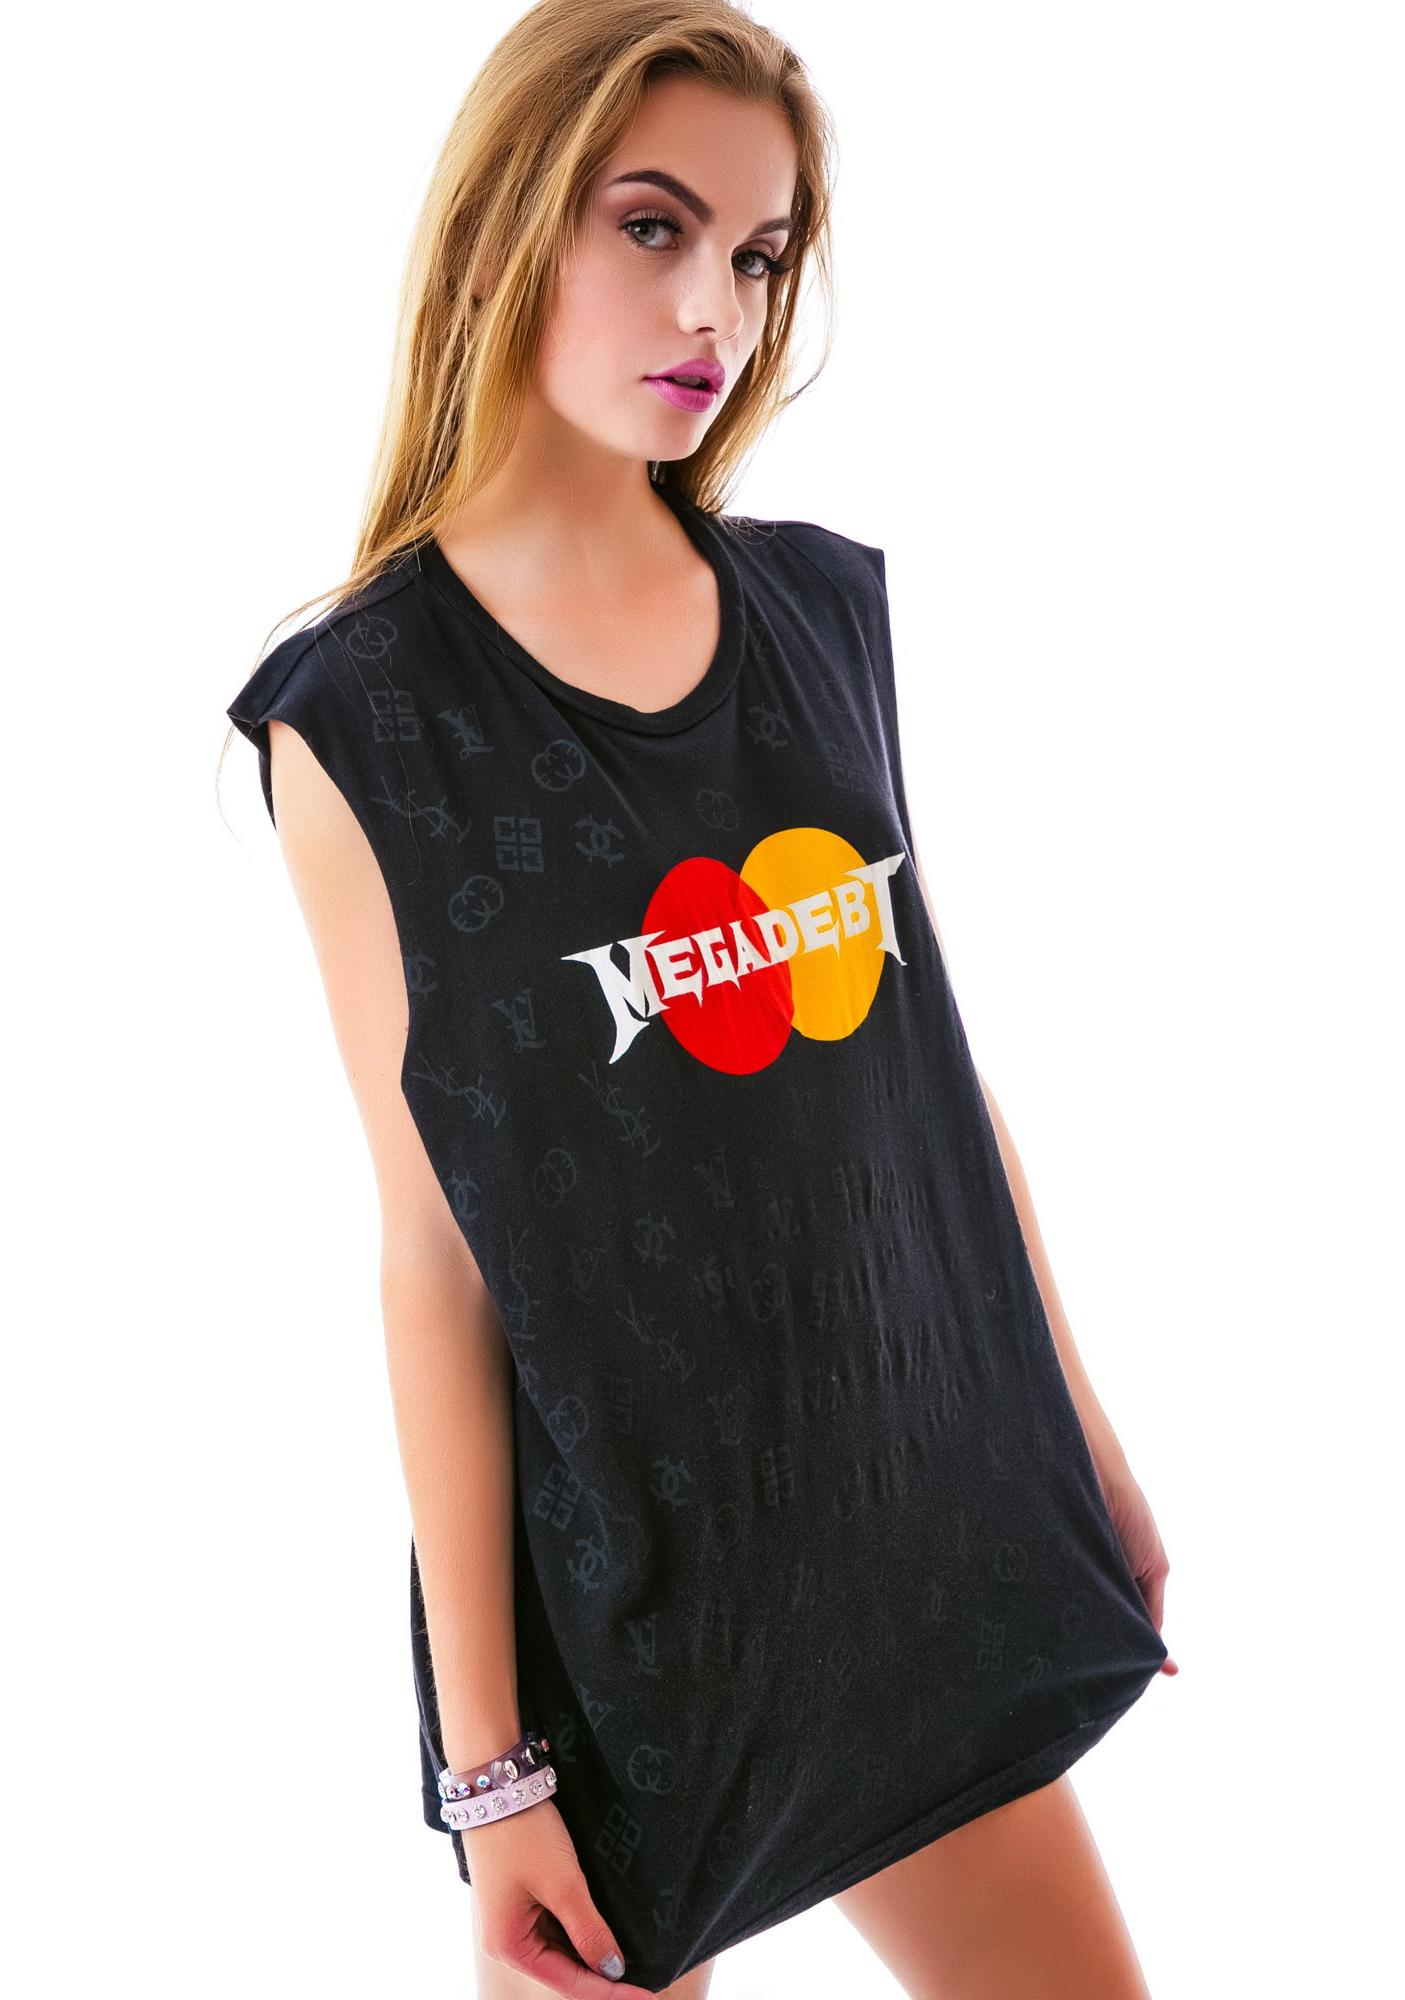 24HRS MEGADEBT Sleeveless Tee